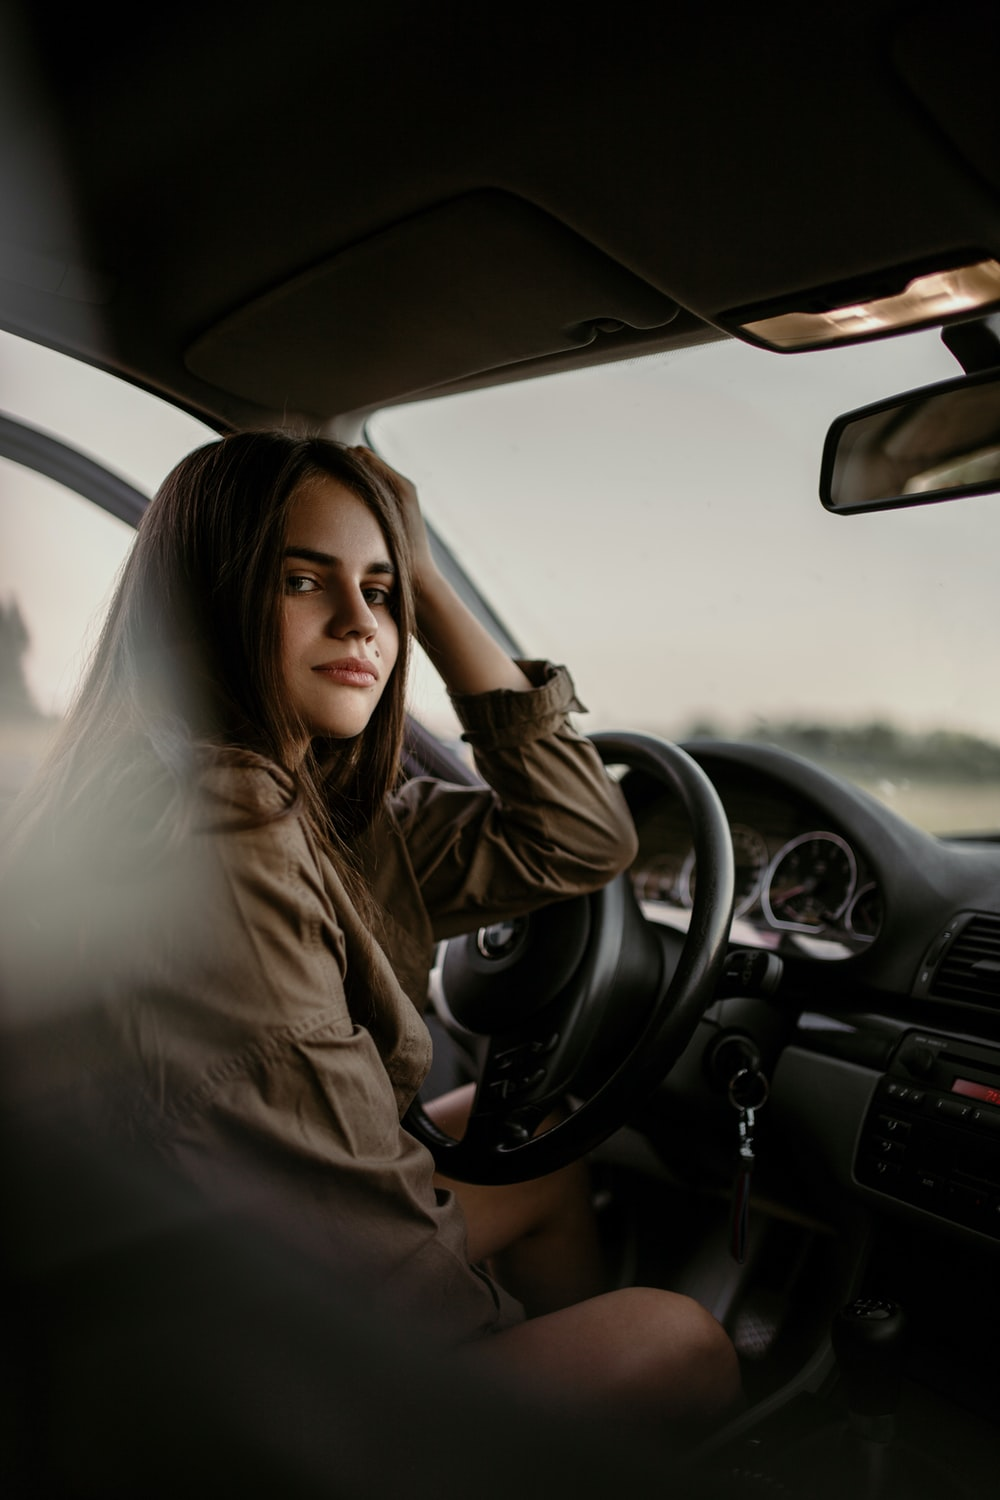 woman sitting inside car